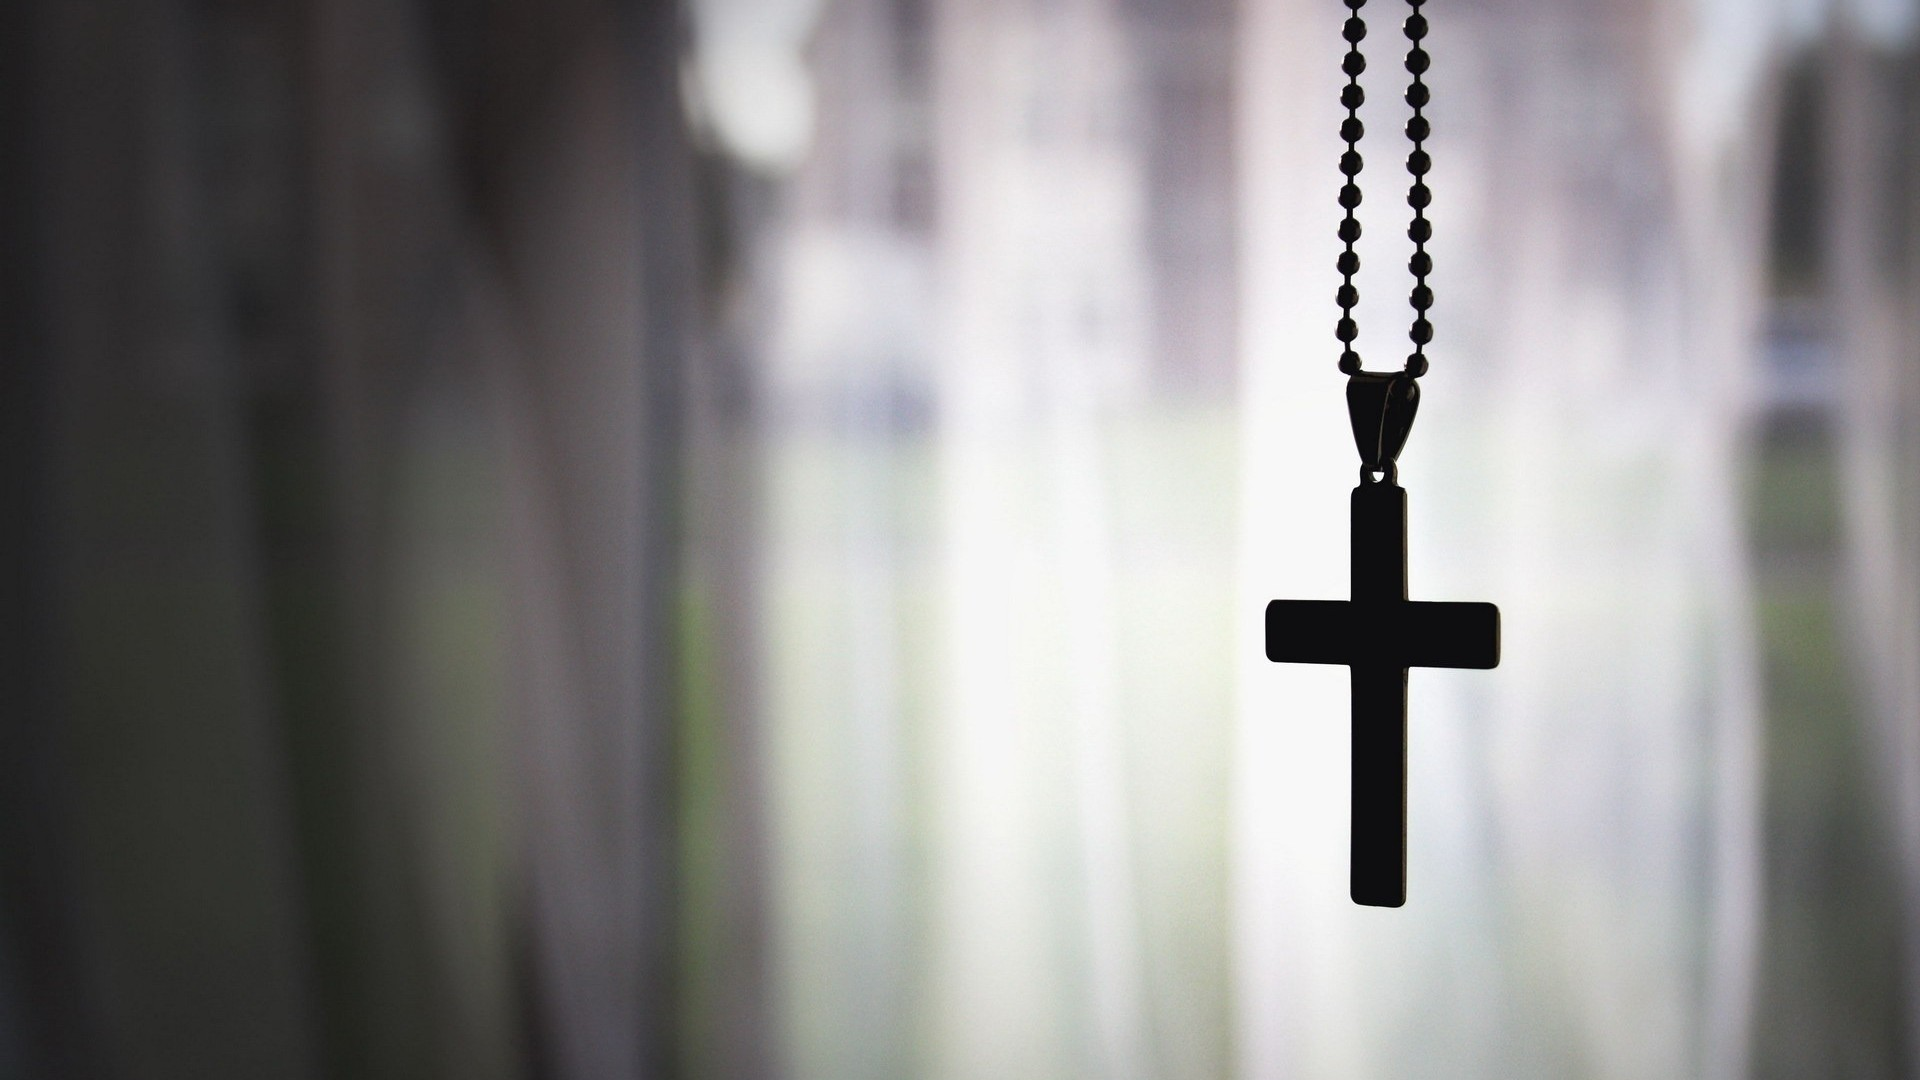 christian catholic chain window gothic Silhouette wallpaper background 1920x1080